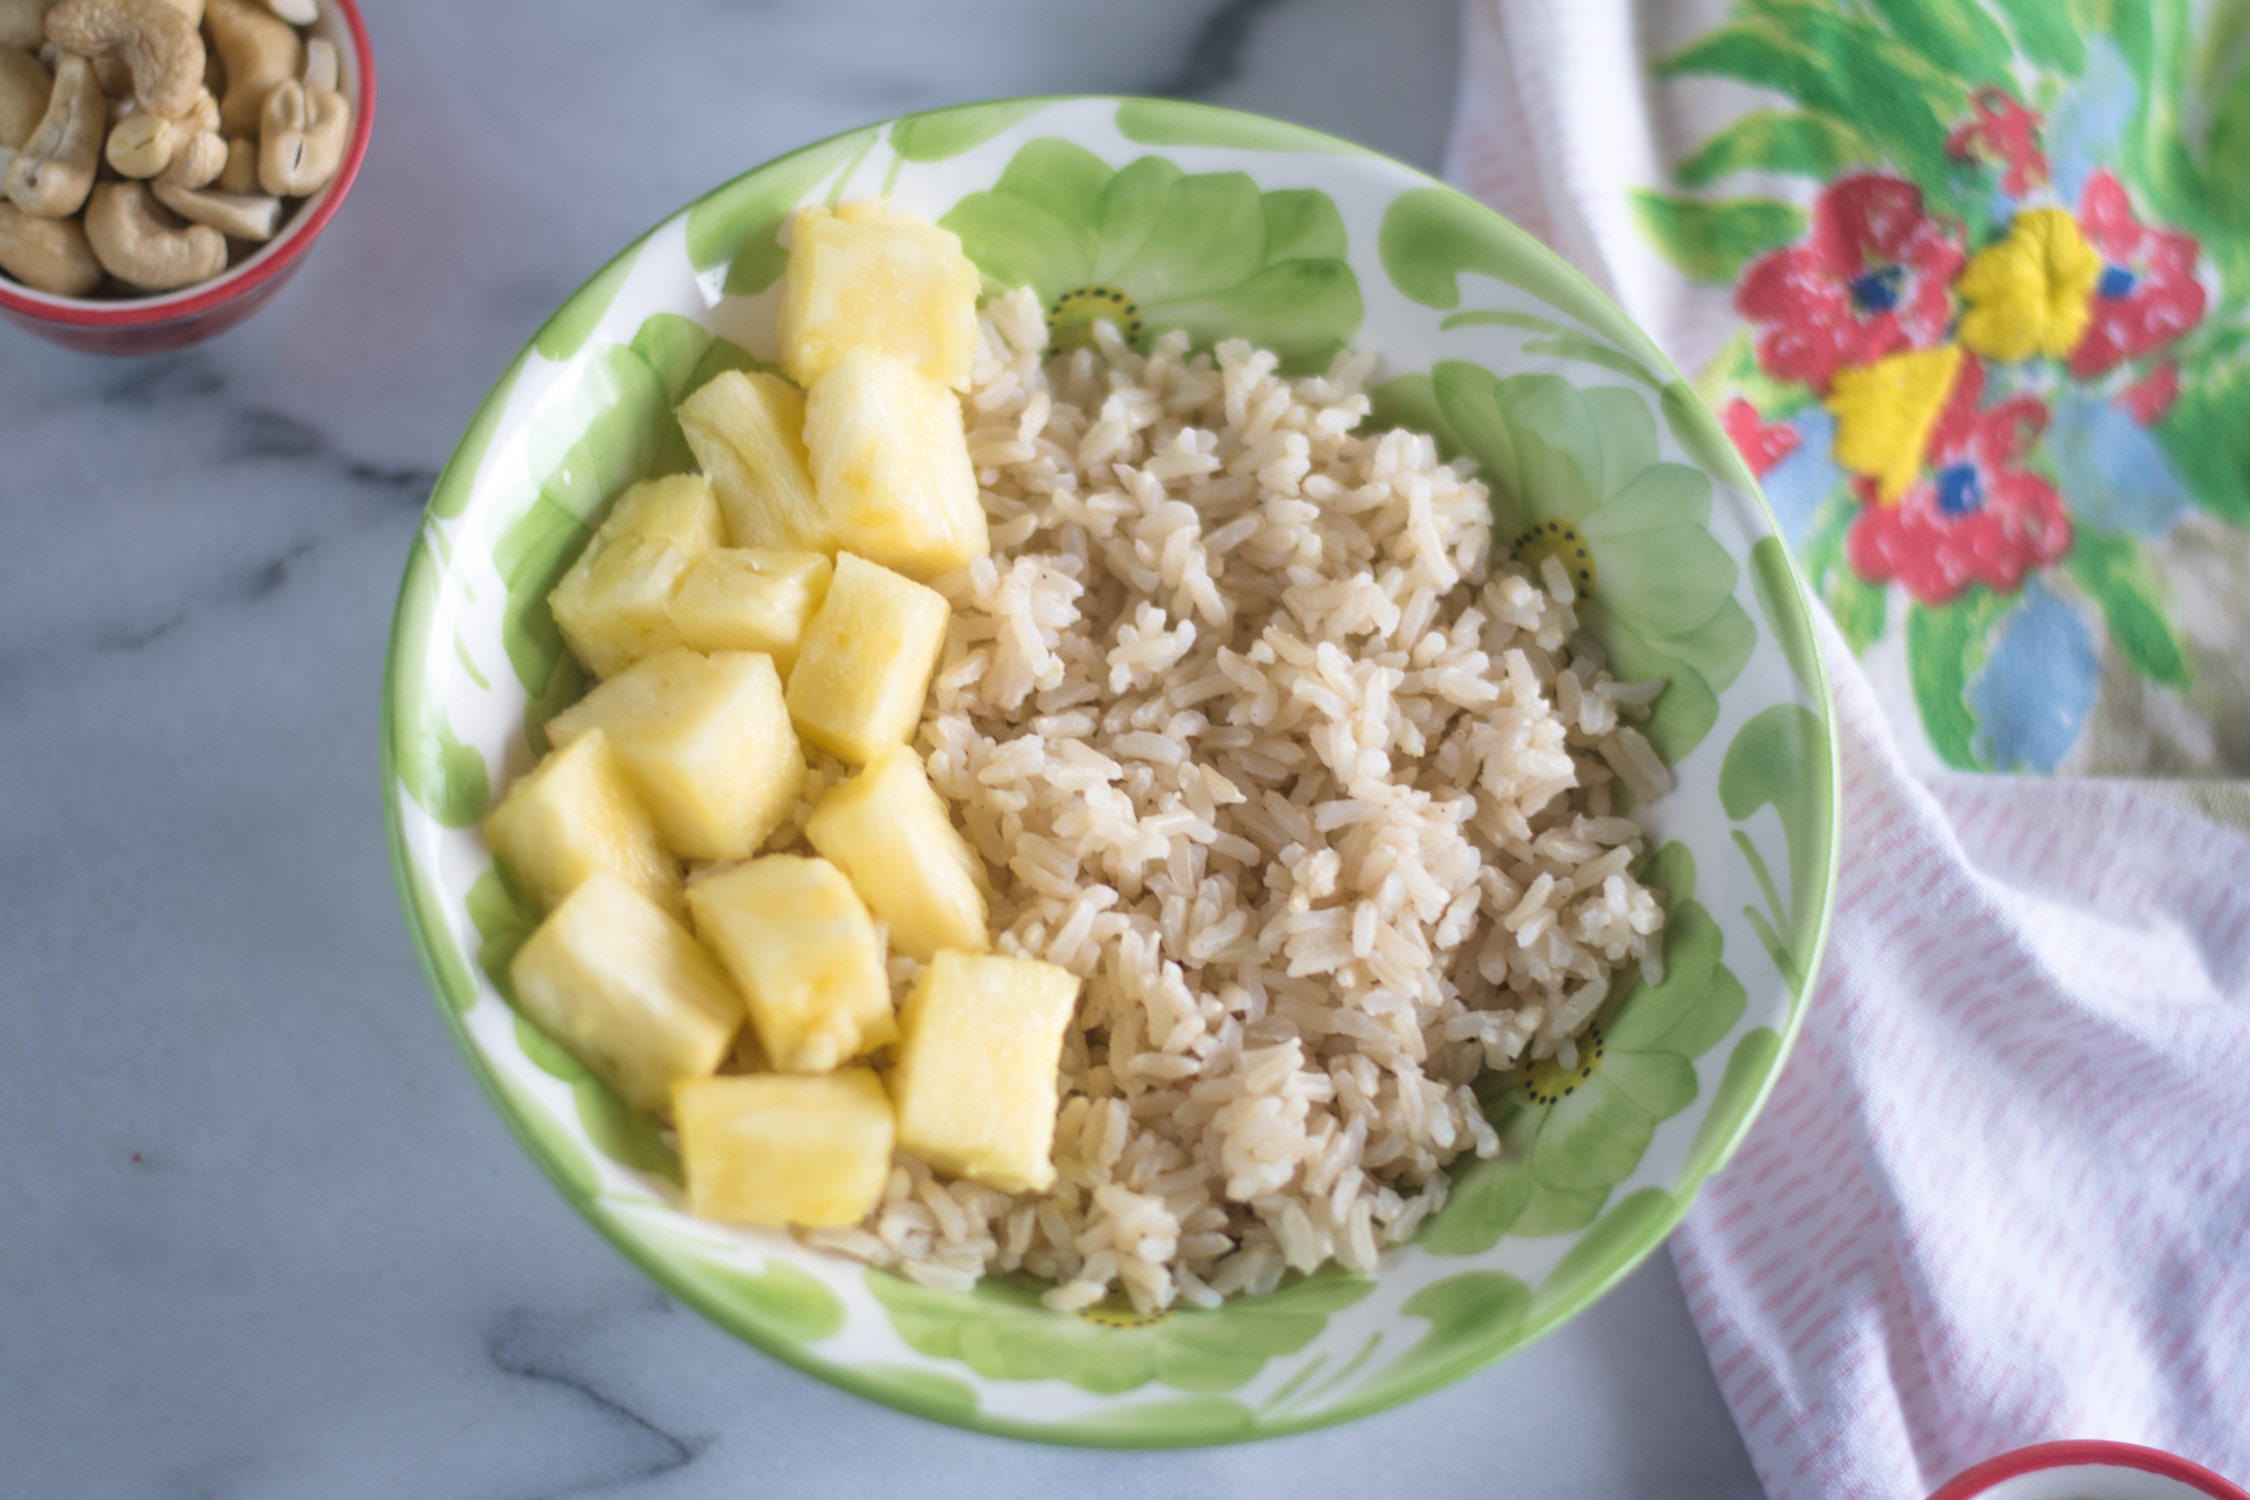 A Touch of the Tropics Rice Bowlstarts by adding cooked jasmine rice to a bowl. The rice is topped with fresh pineapple, cashews, roasted sweet potatoes, and hemp seeds.